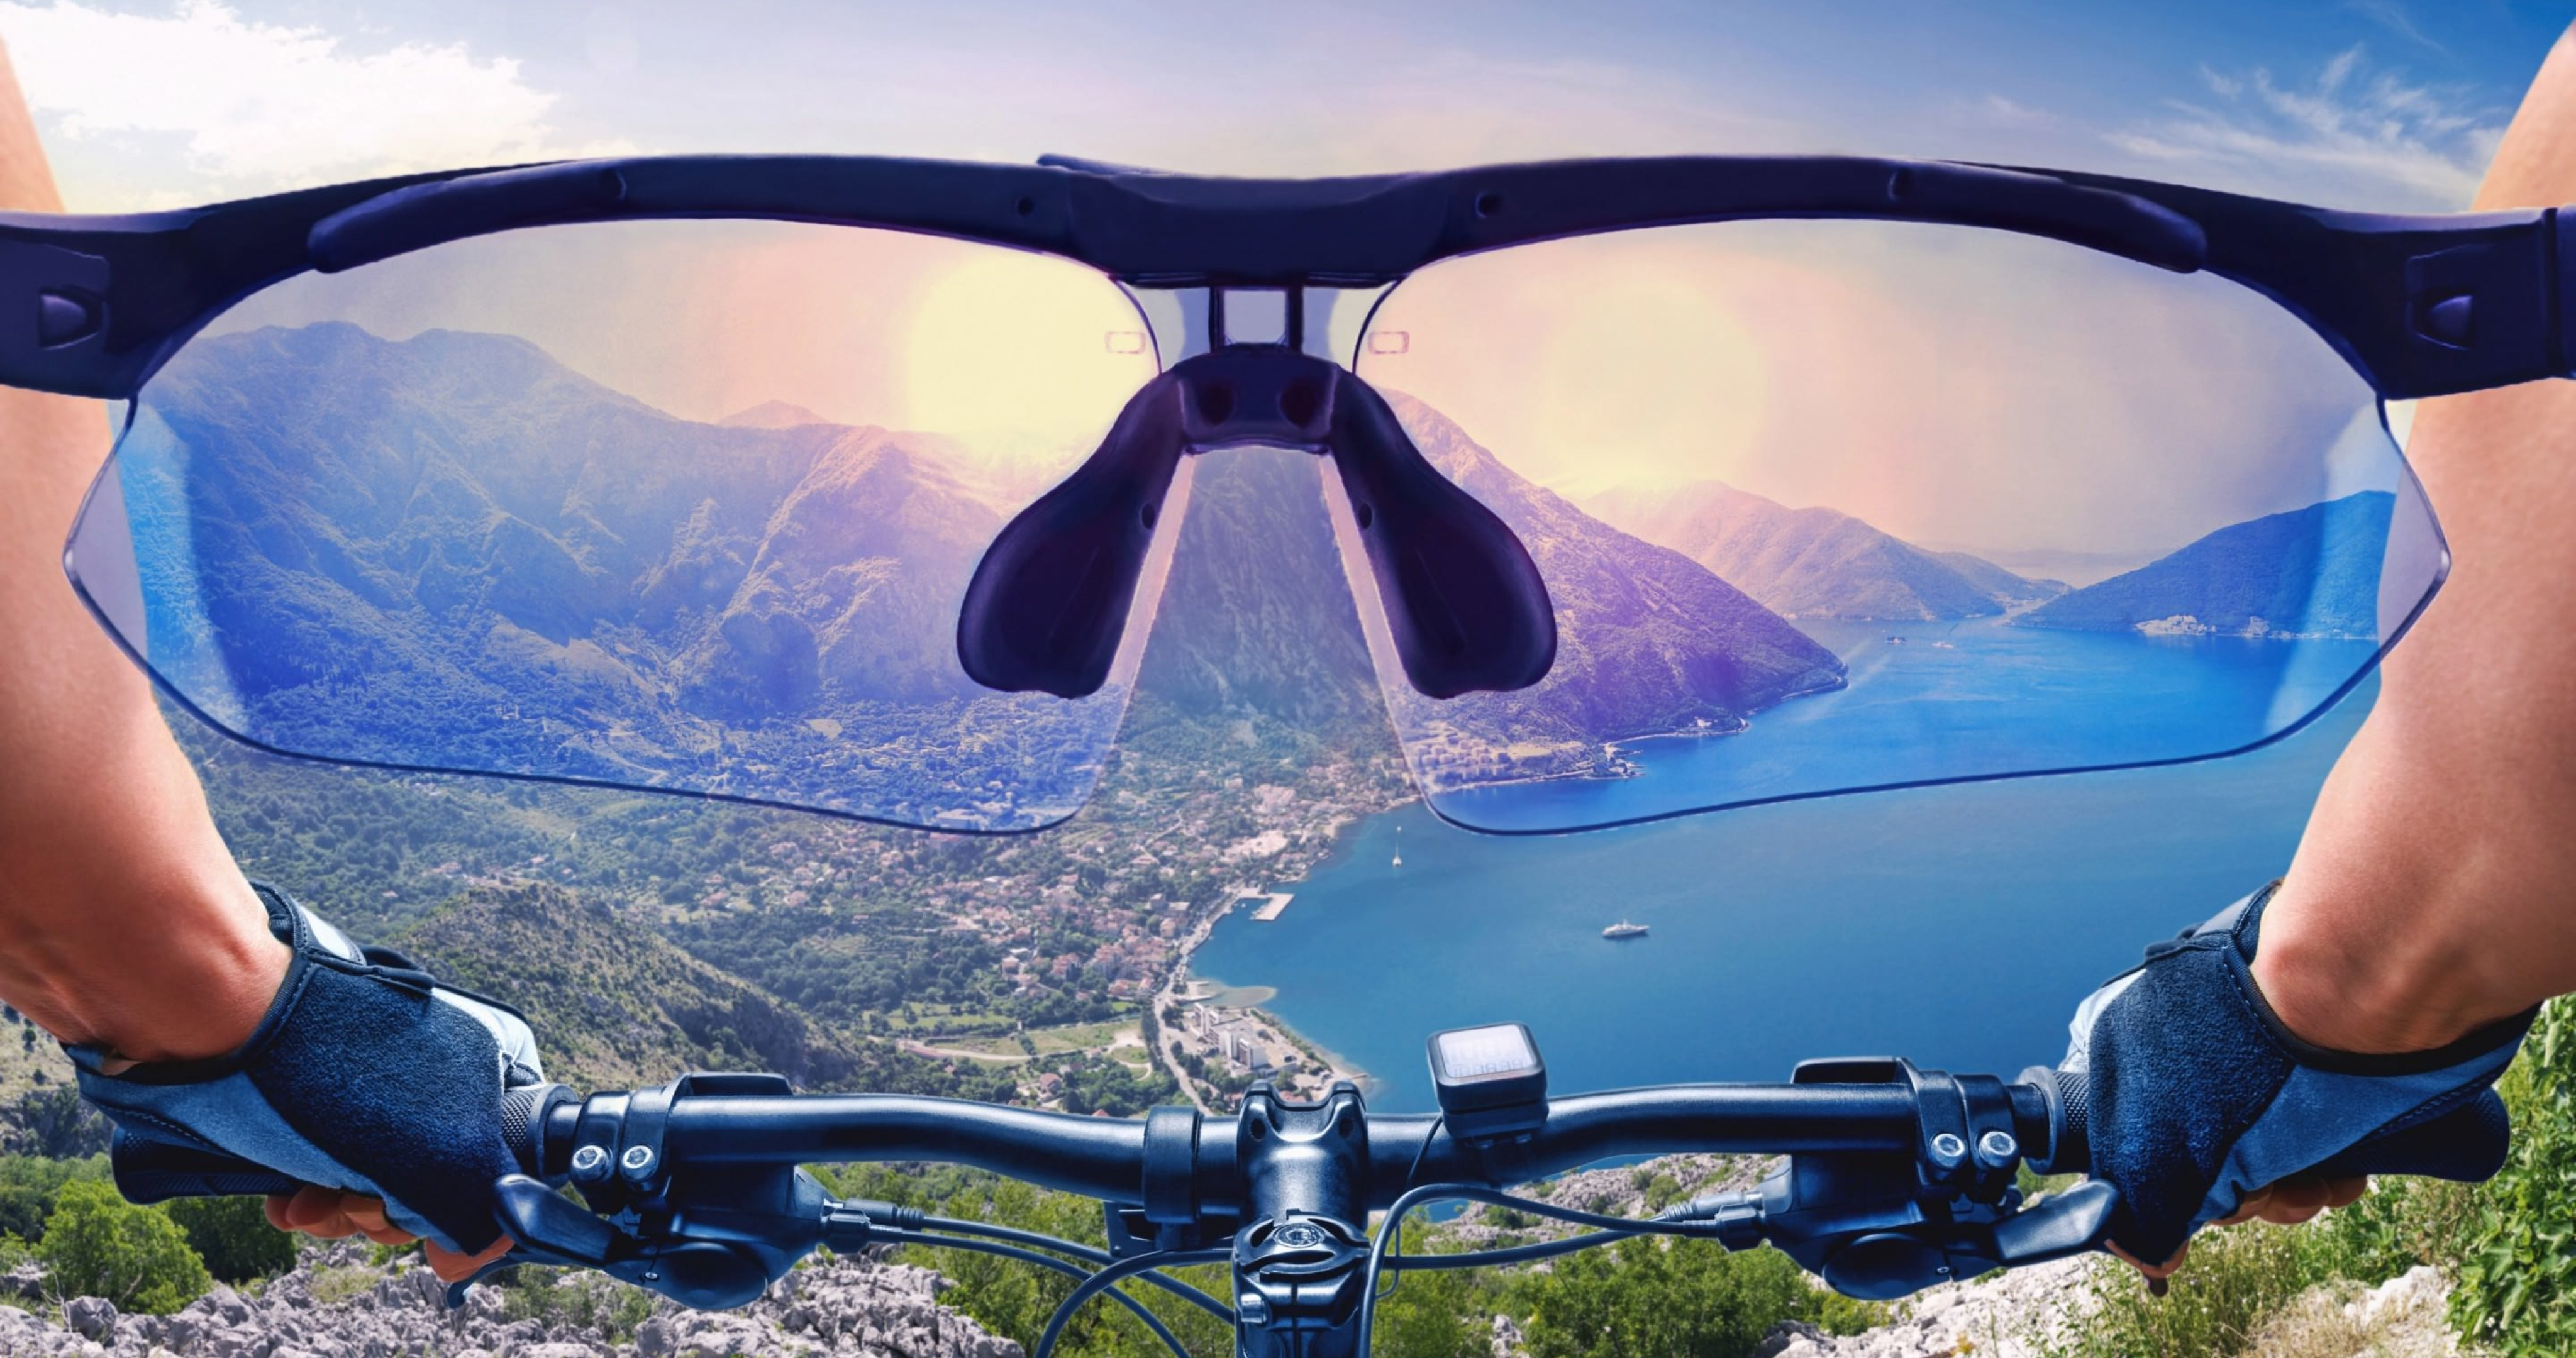 Cycling Bike View From First Person 4k Ultra Hd Wallpaper High Quality Walls